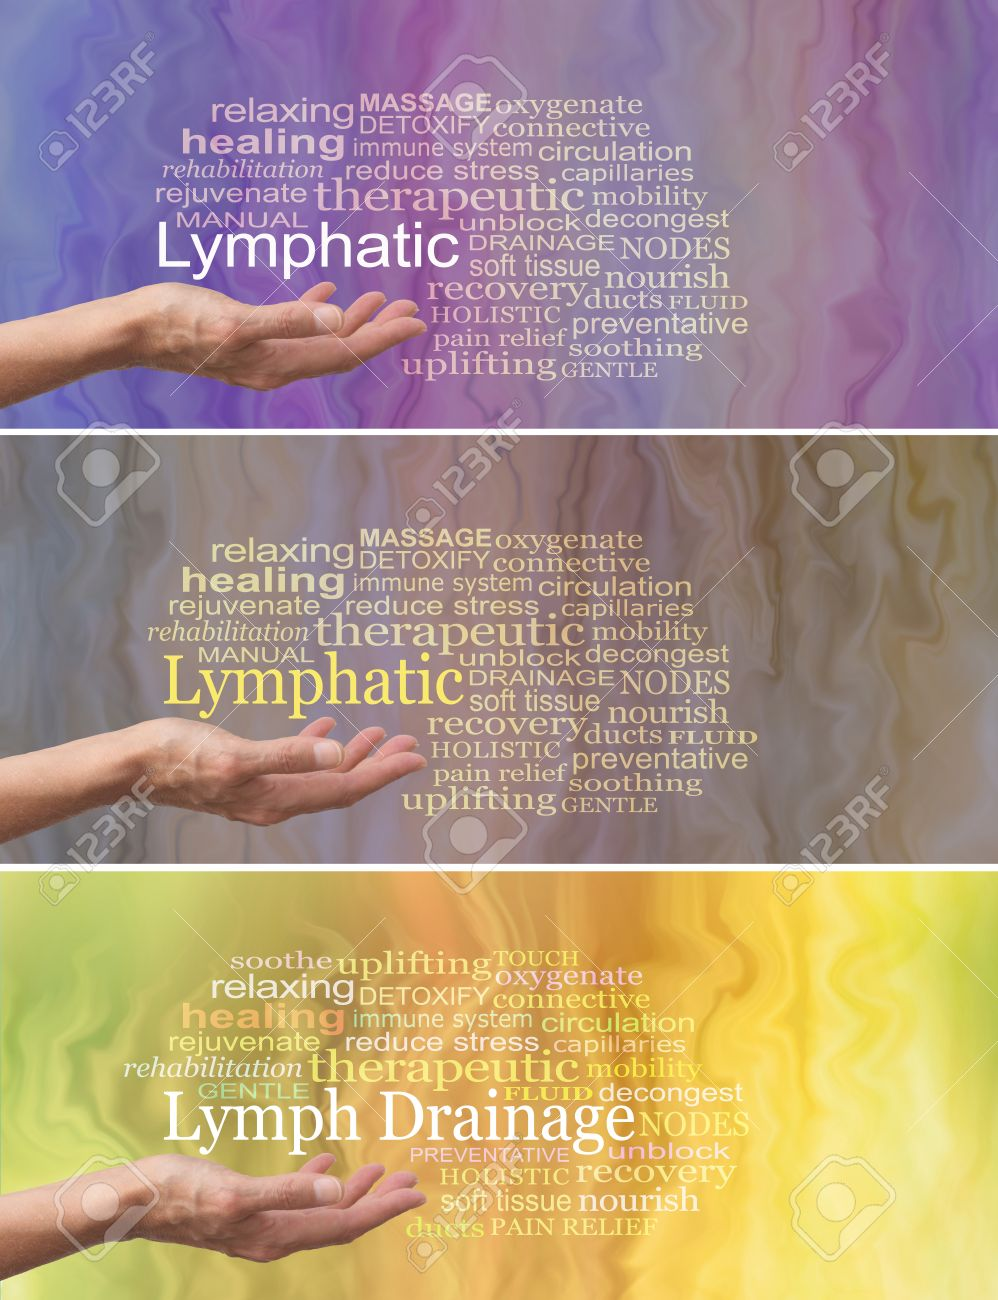 Manual Lymphatic Drainage Word Cloud x 3 - female hand palm facing up with the word LYMPHATIC DRAINAGE above surrounded by a relevant word cloud on a fluid like background showing three different colorways - 62352276